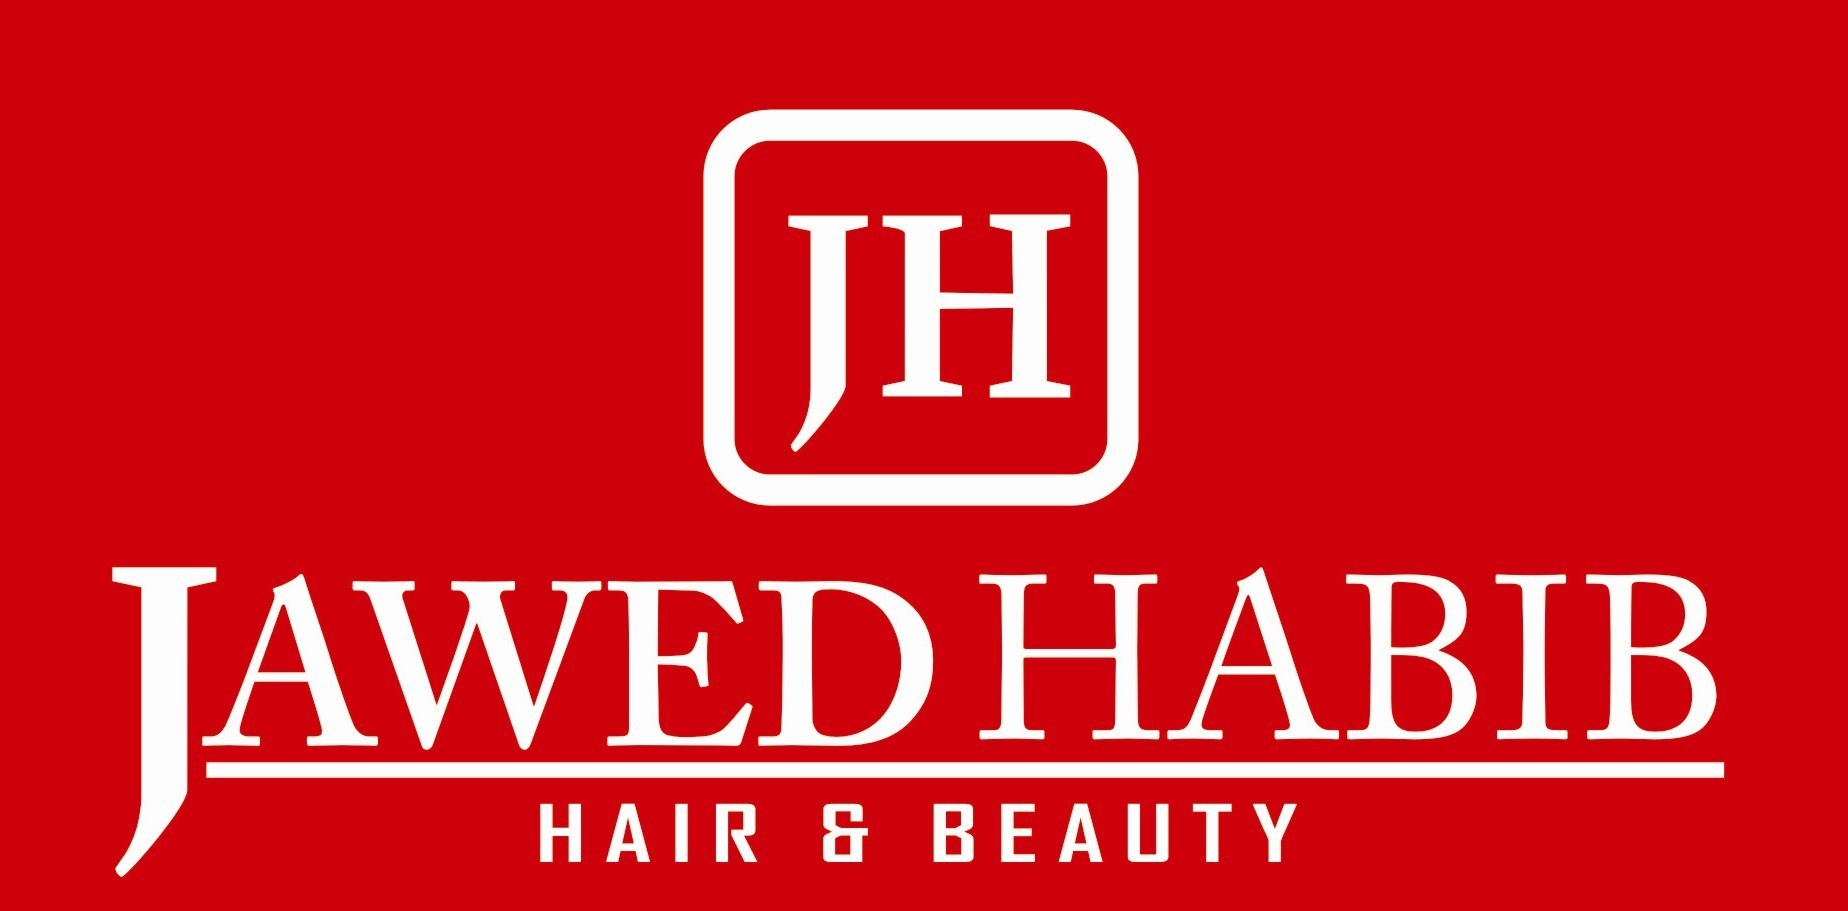 Jawed Habib Hair & Beauty Salons - M. M. Malviya Road - Amritsar Image